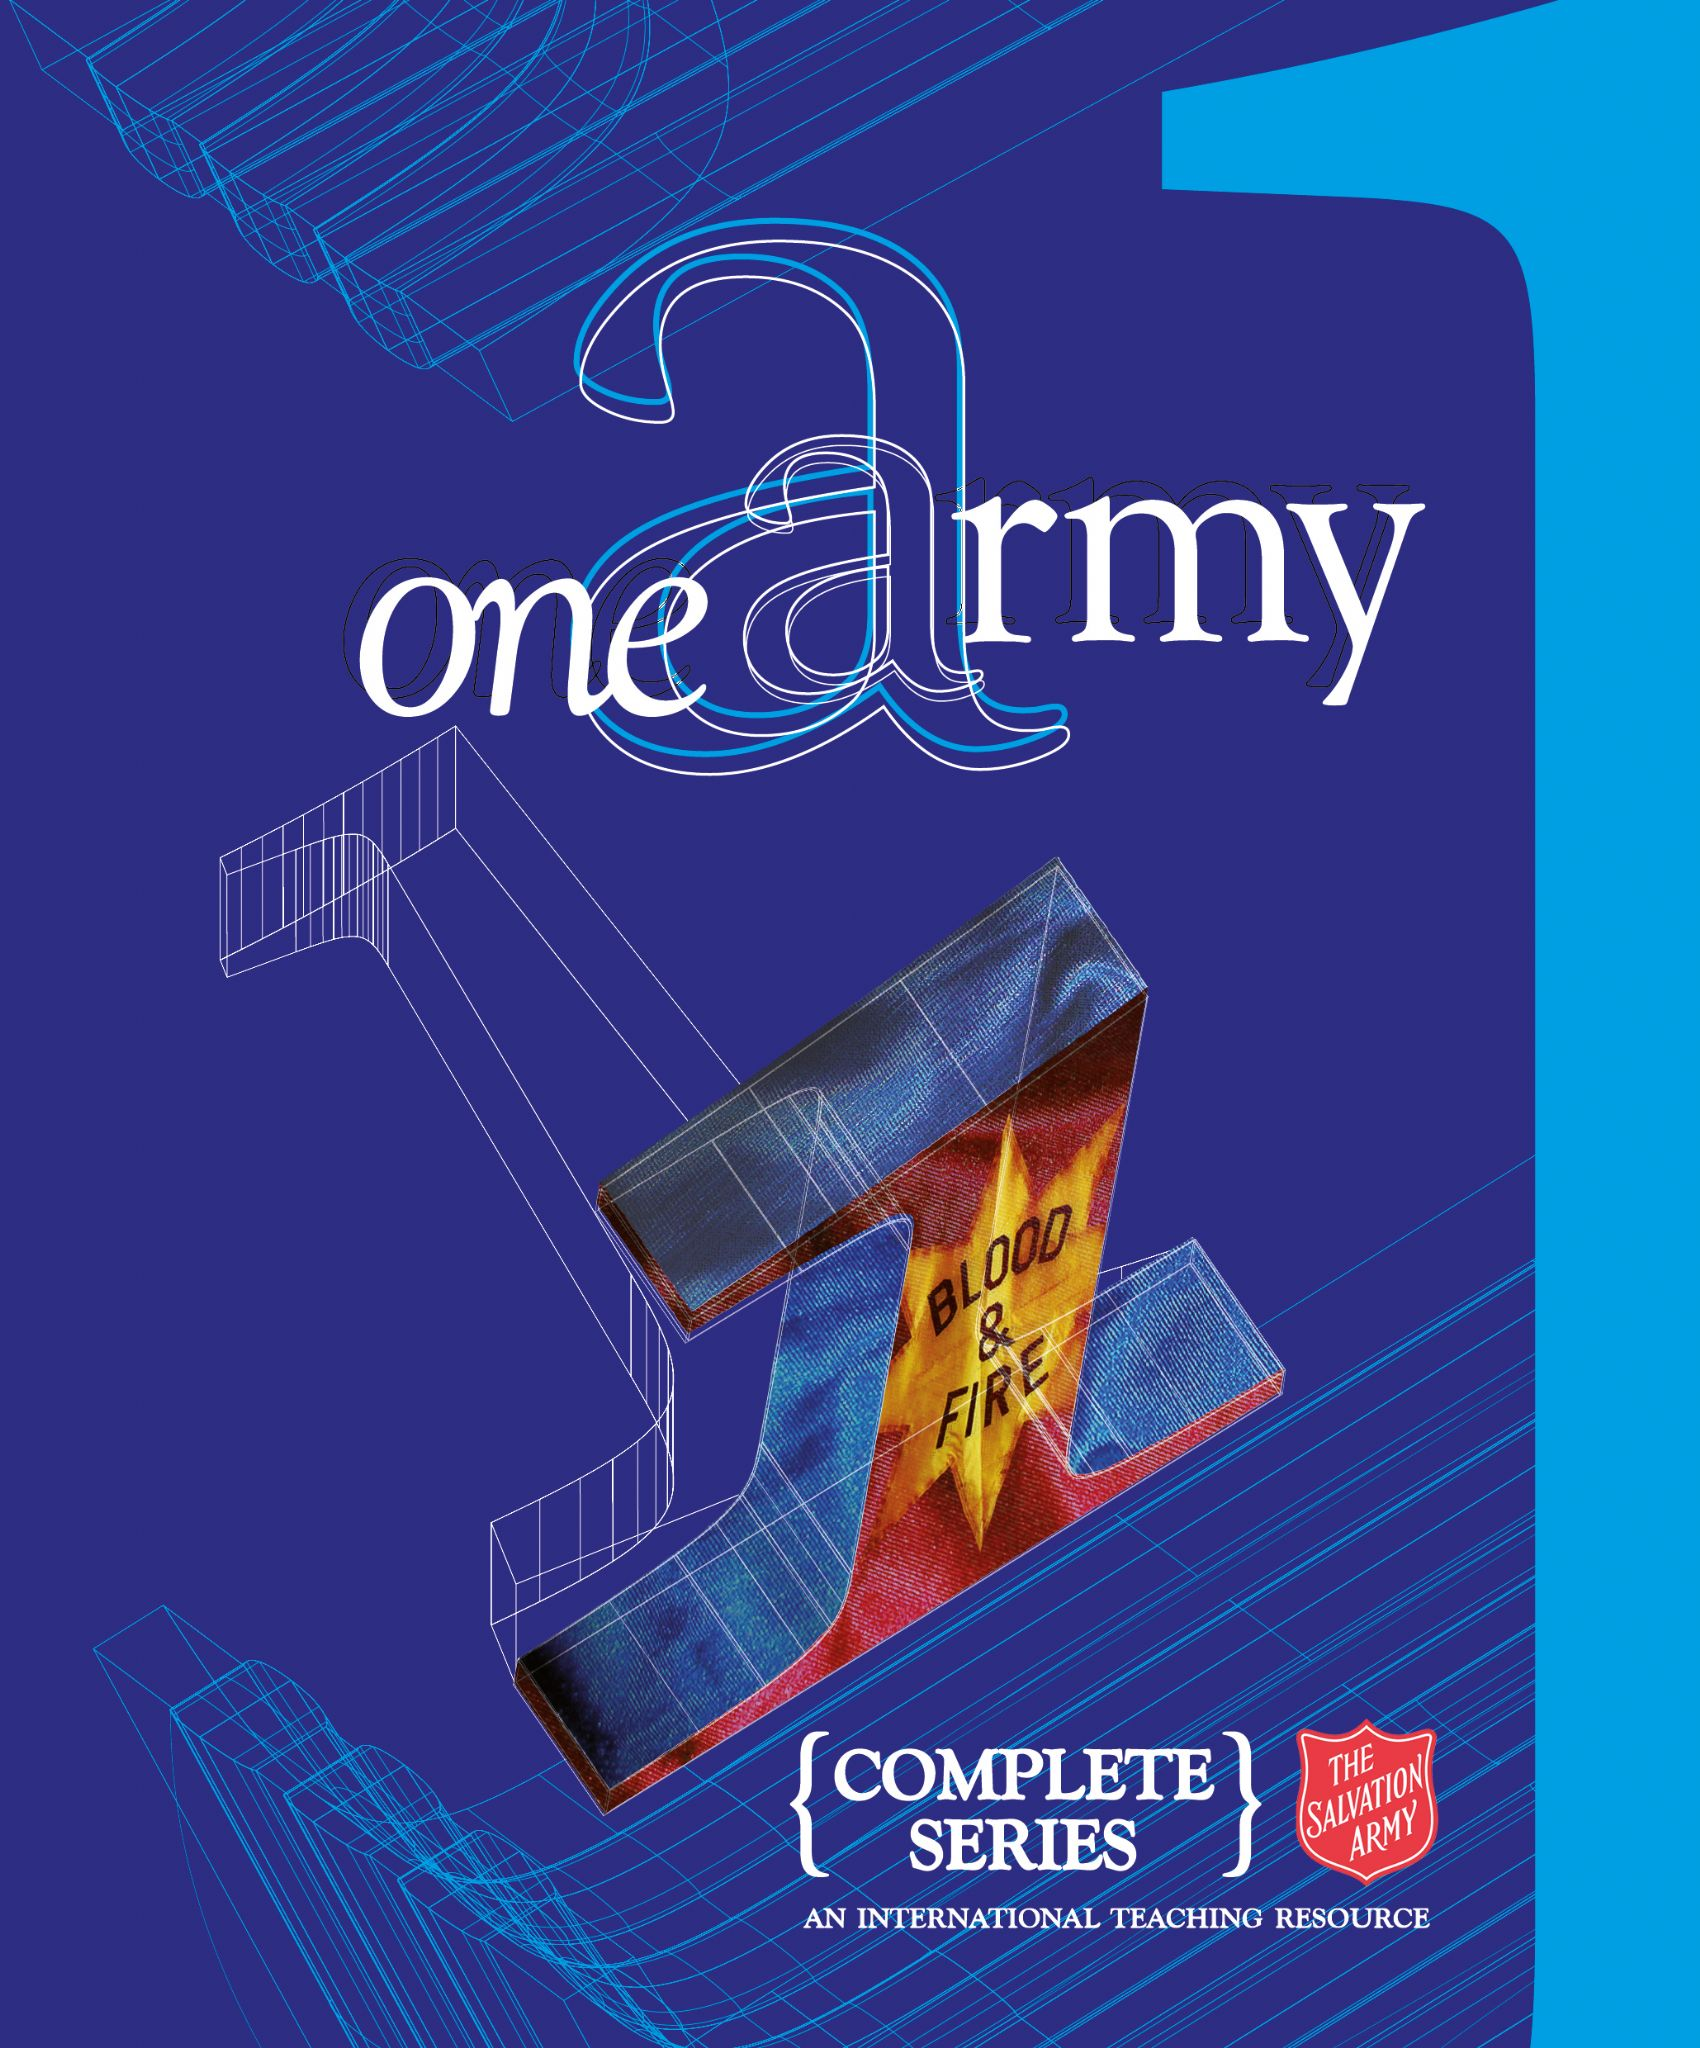 DVD/Book: One Army the Complete Series